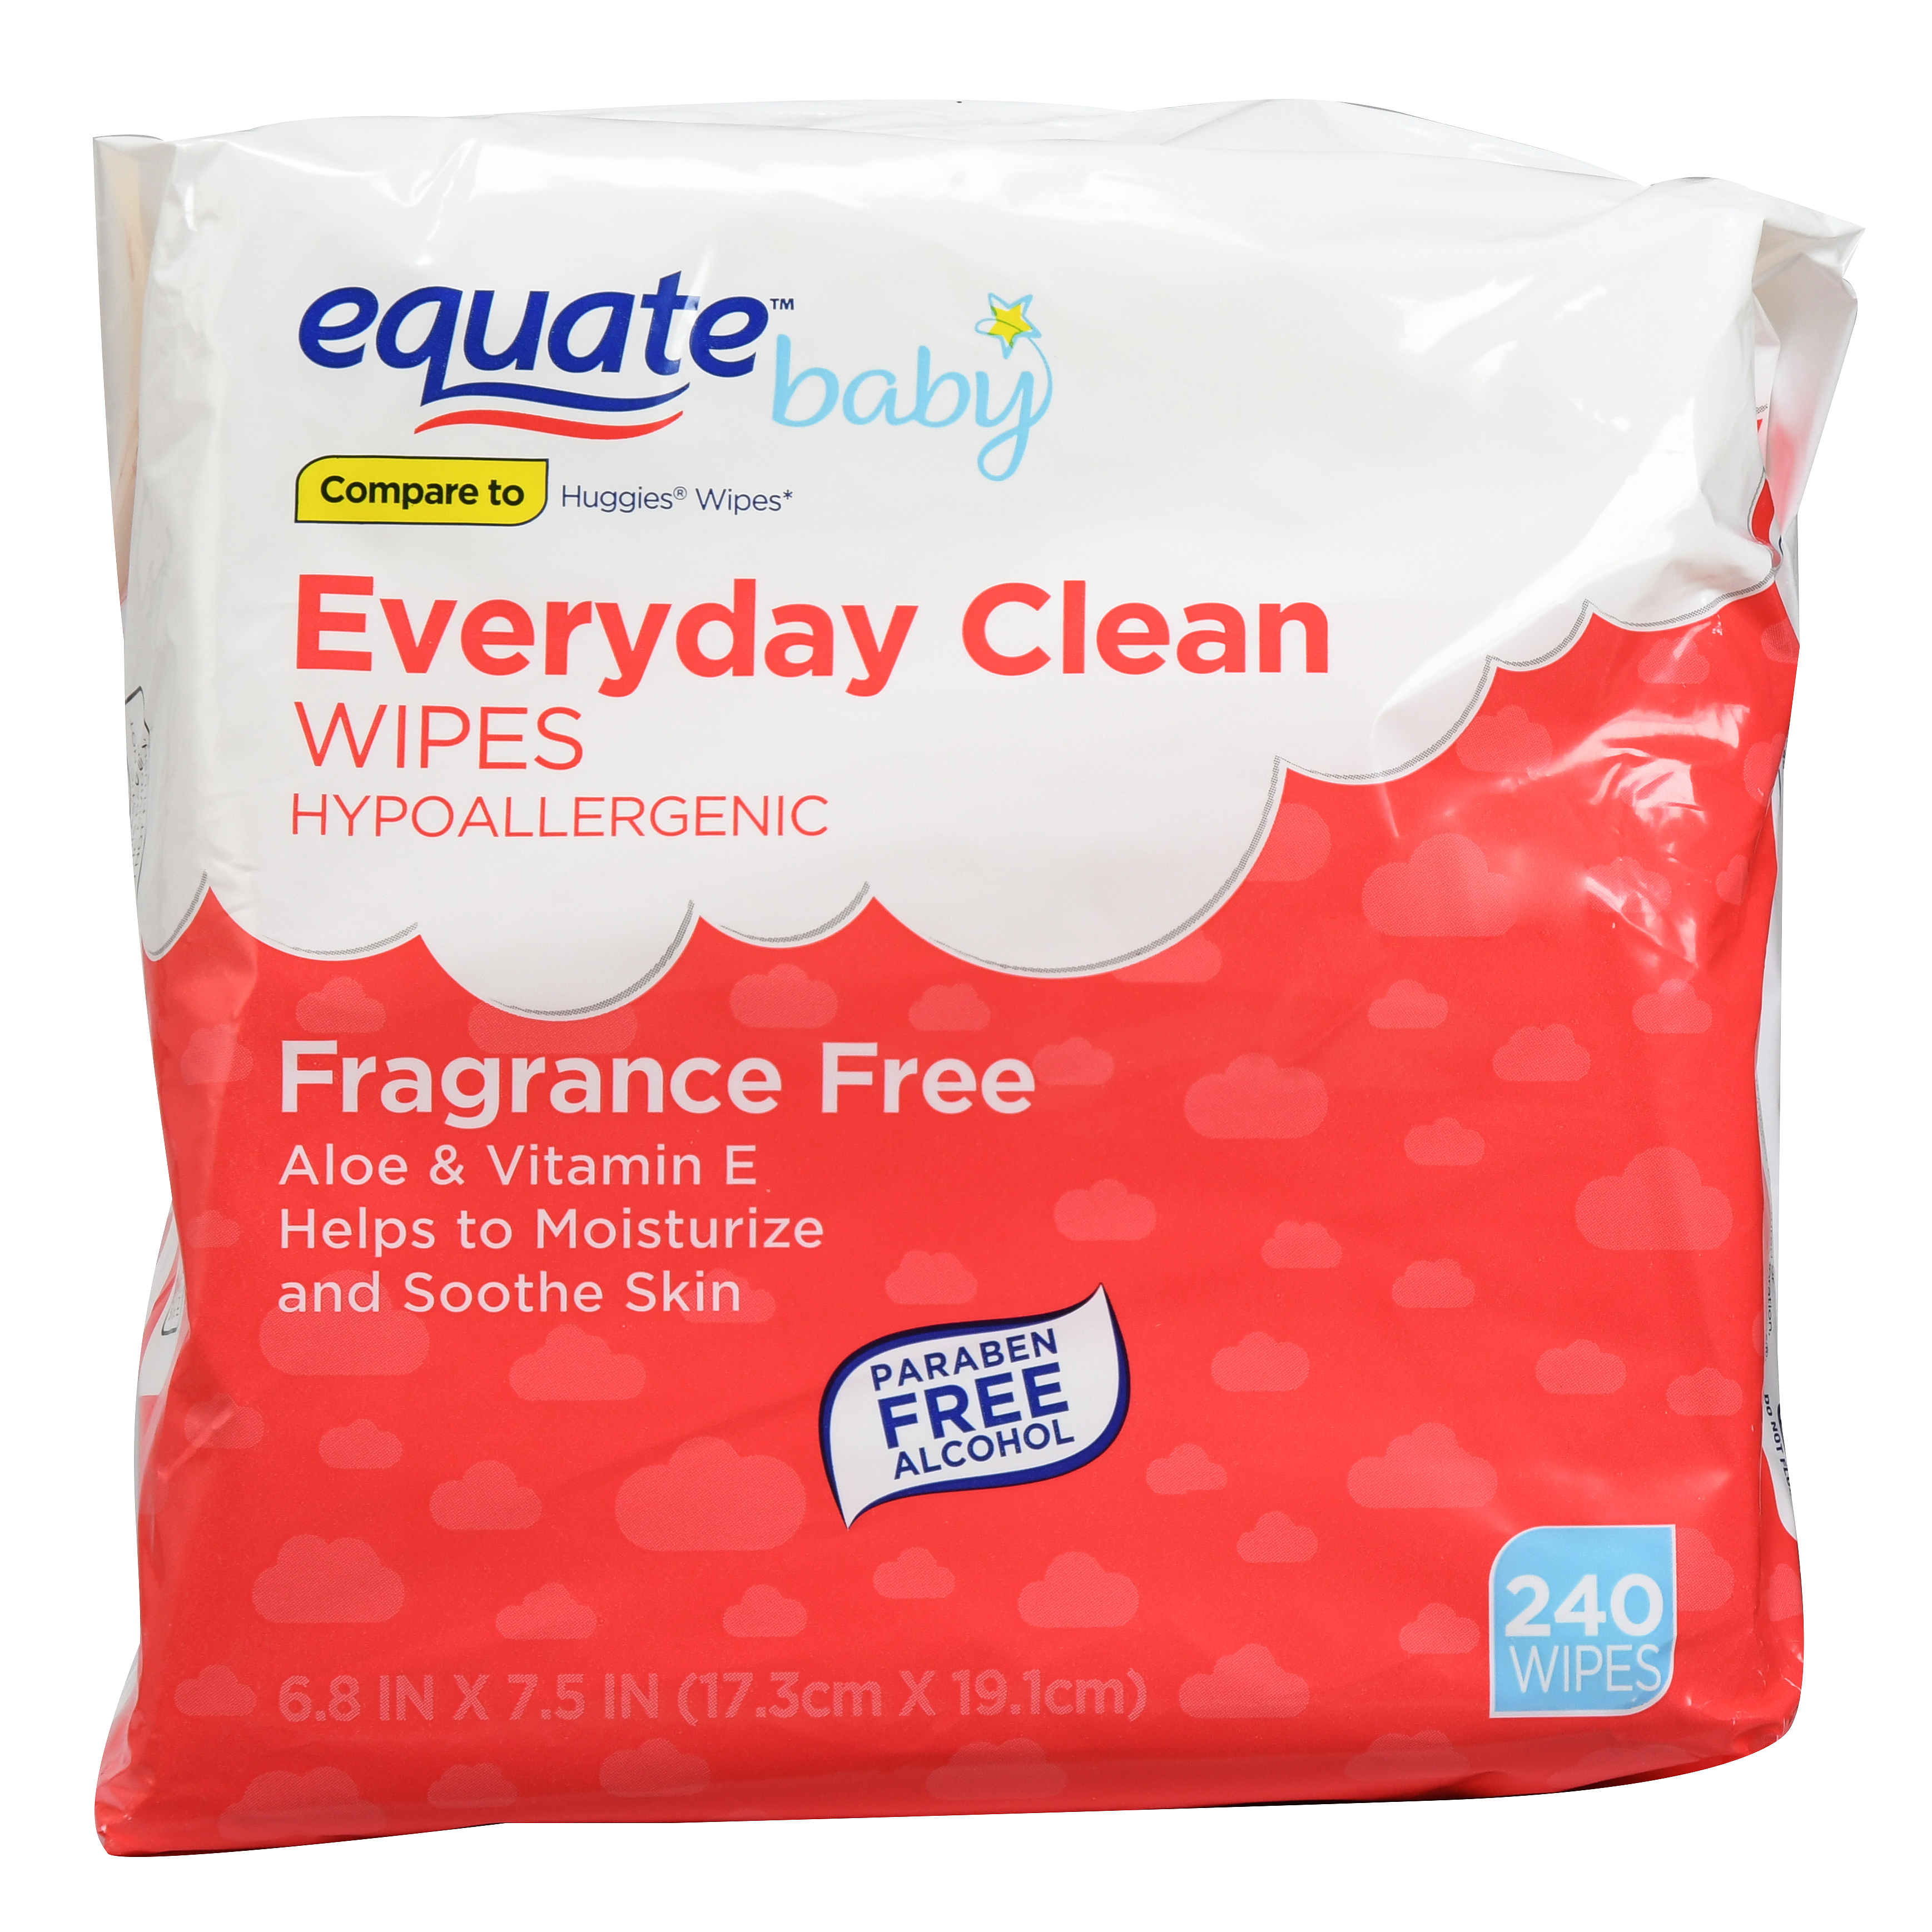 Equate Baby Everyday Clean Wipes, Fragrance Free (240 ct)